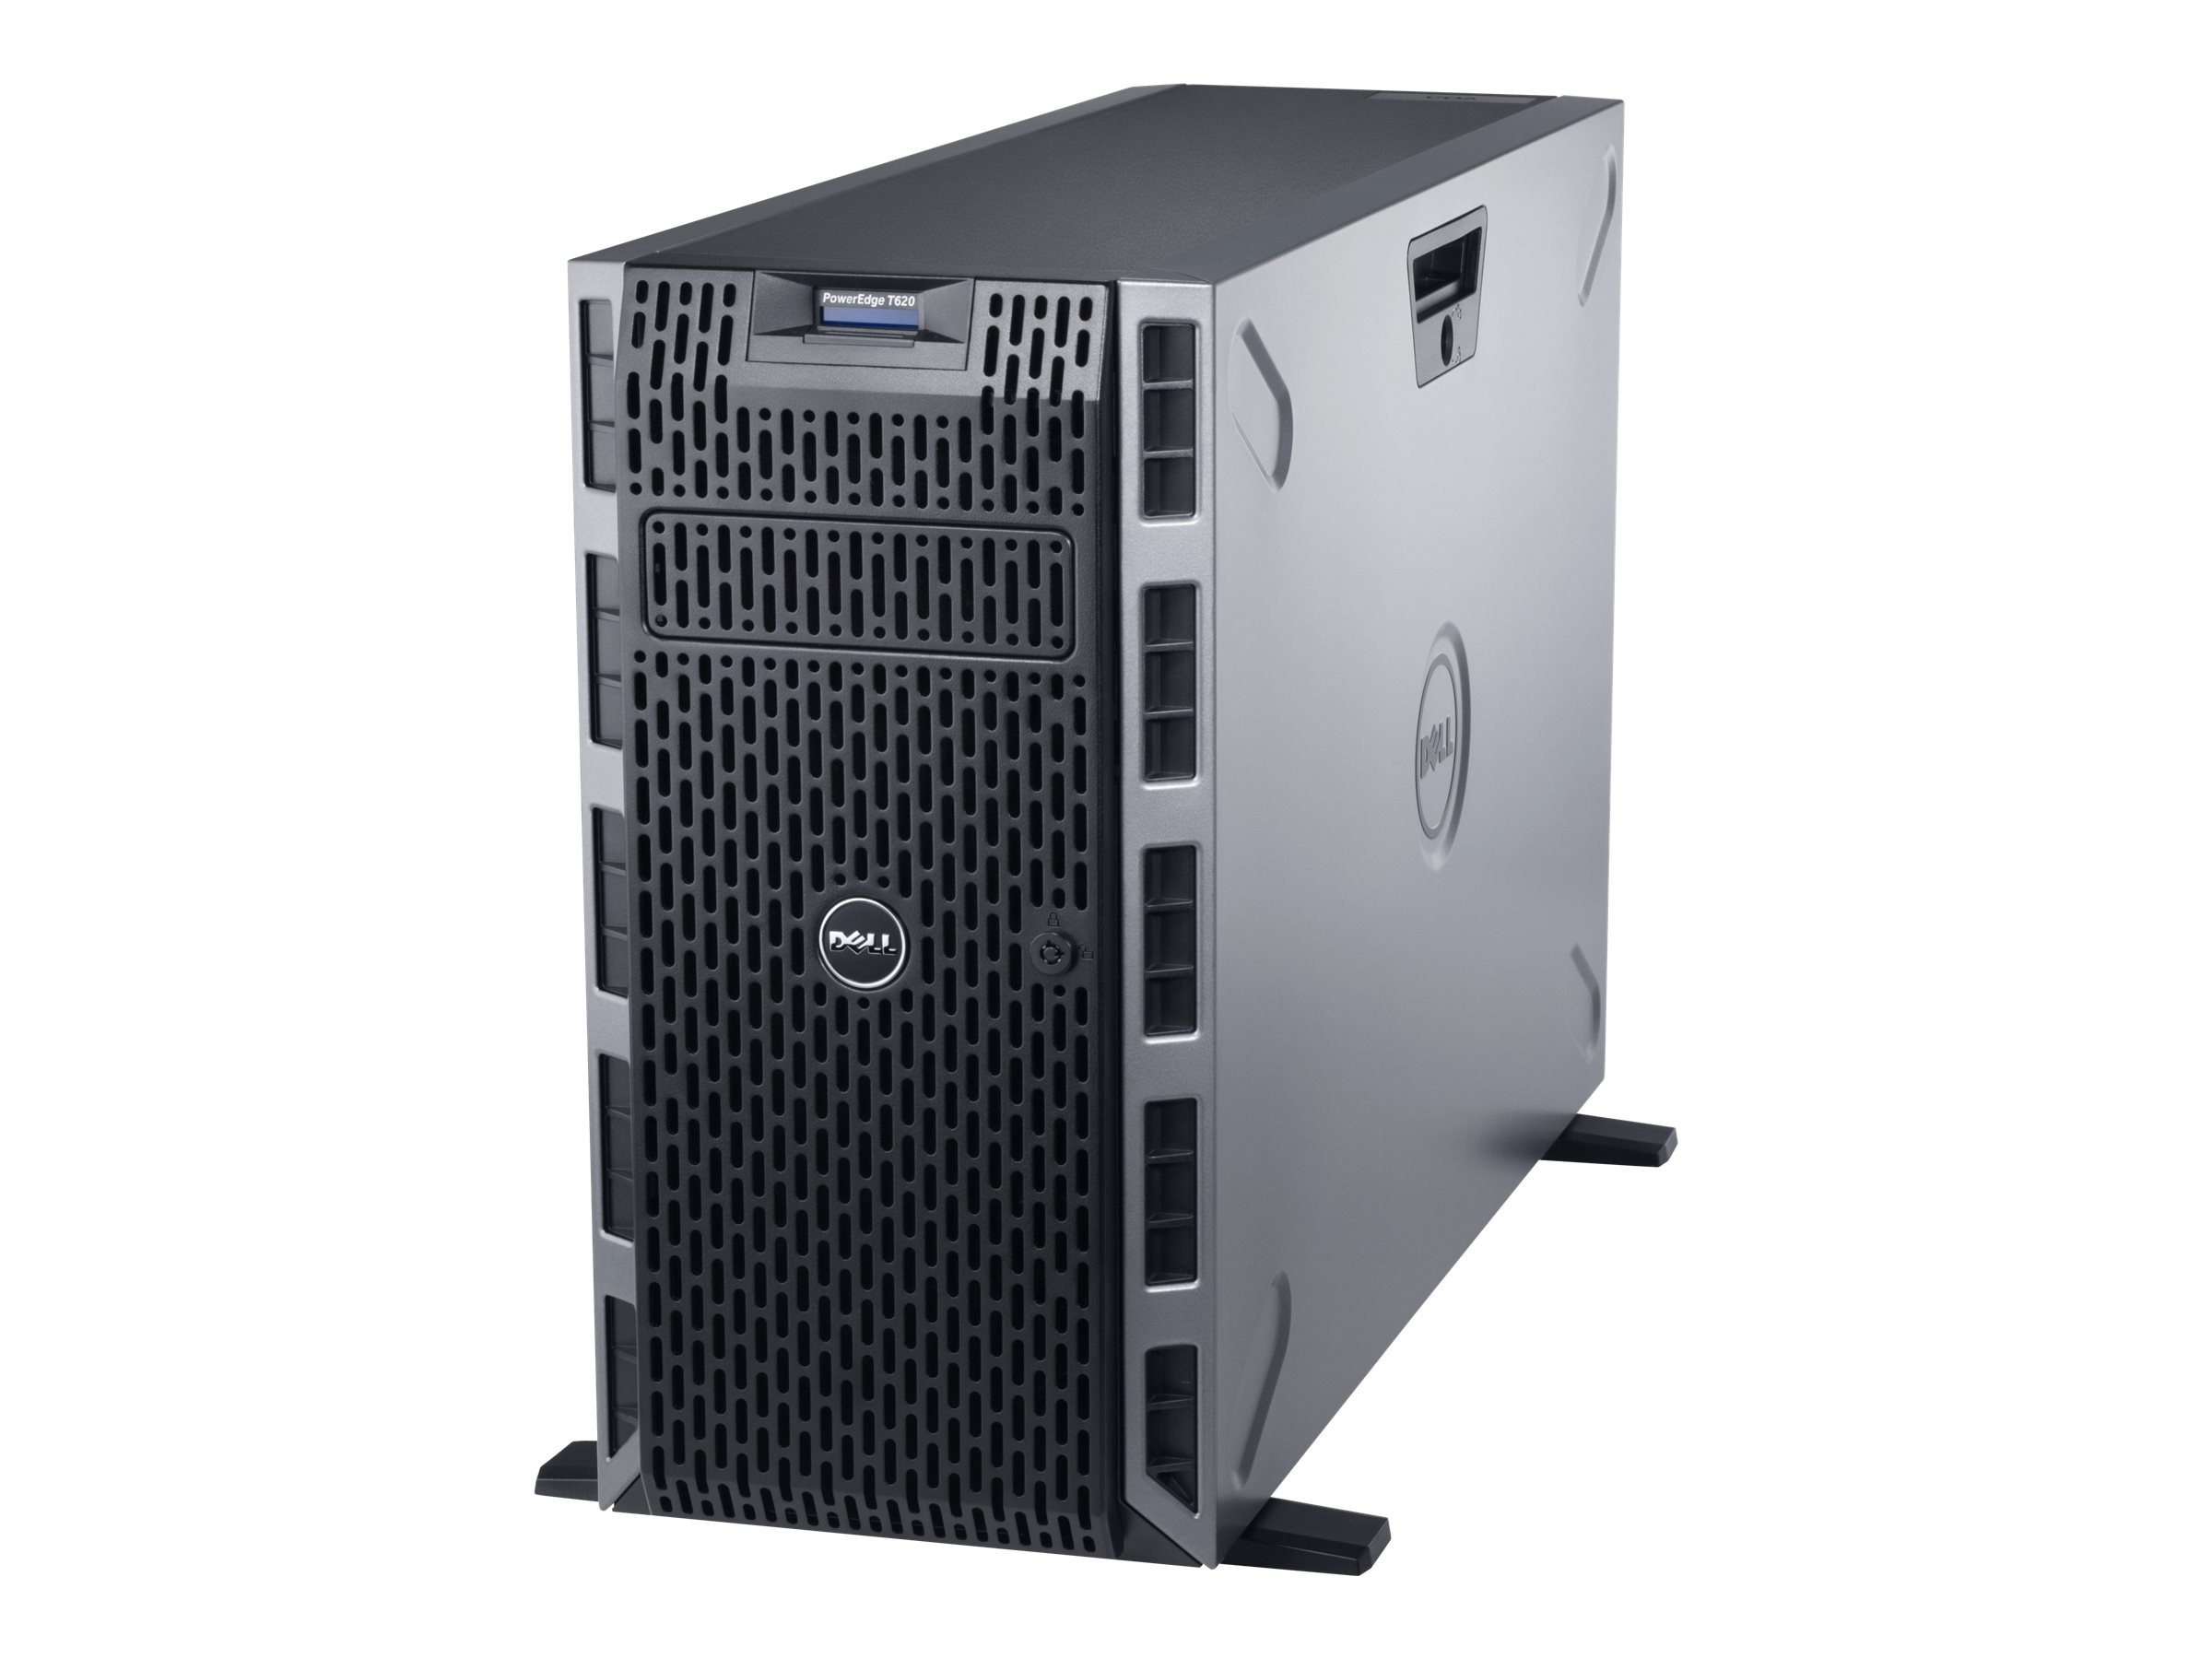 Dell PowerEdge T620 Intel 2.0GHz Xeon